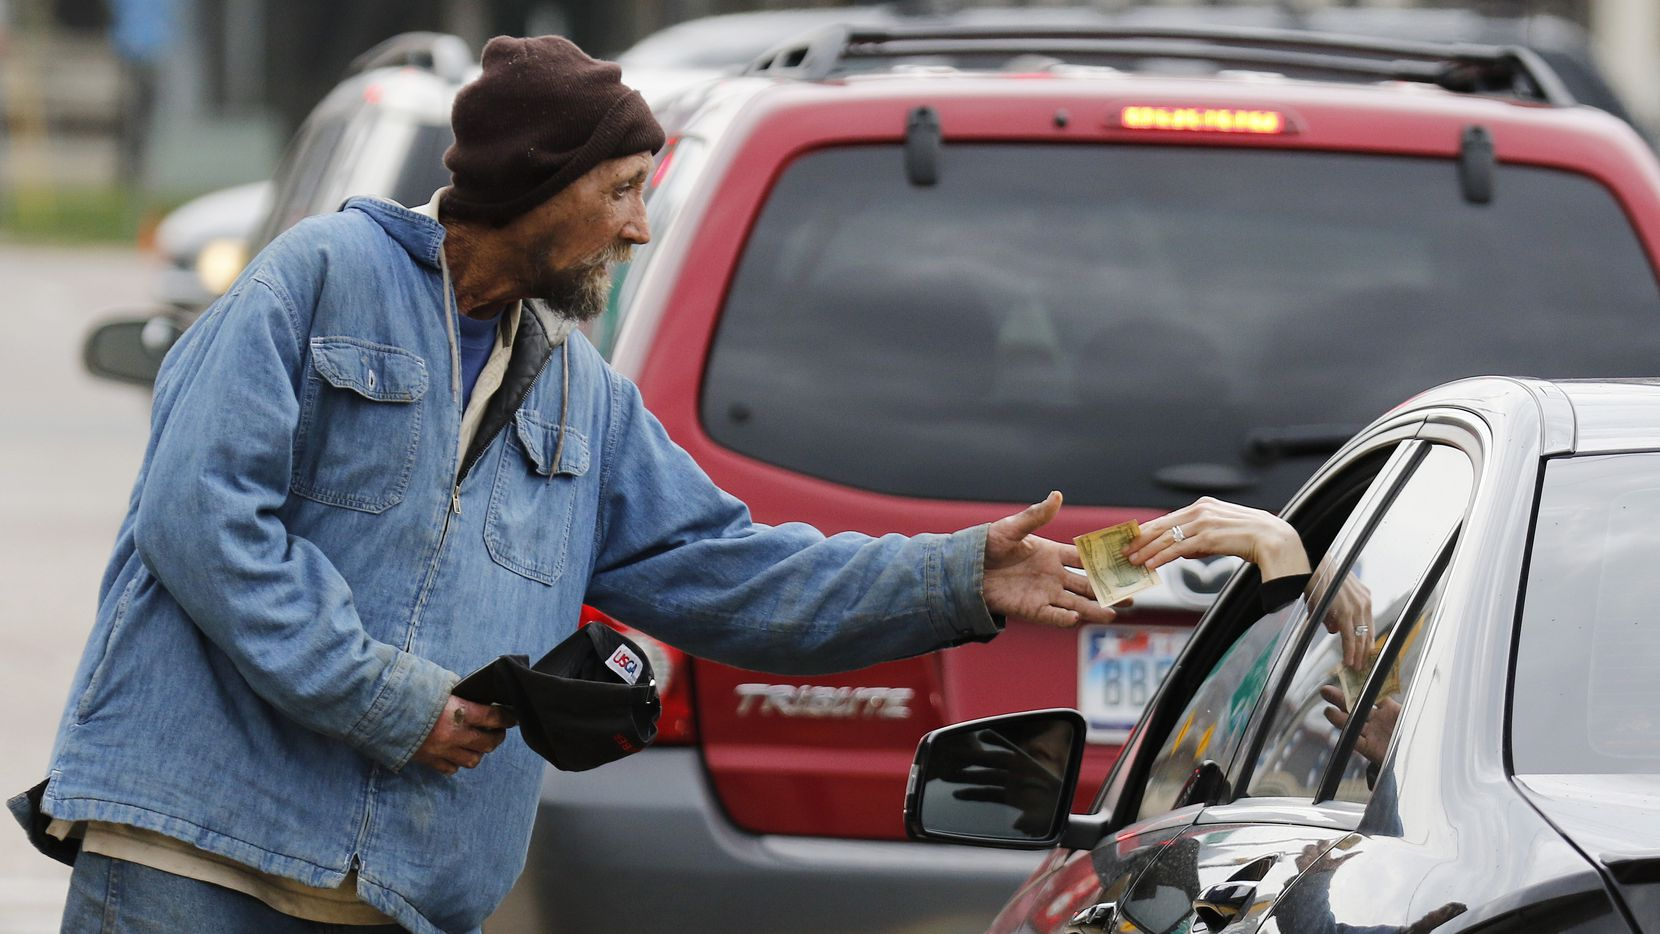 Robert Rushing, 58, works the corner on the service road of I-35 and Oak Lawn on Monday, March 7, 2016. He said he is homeless.